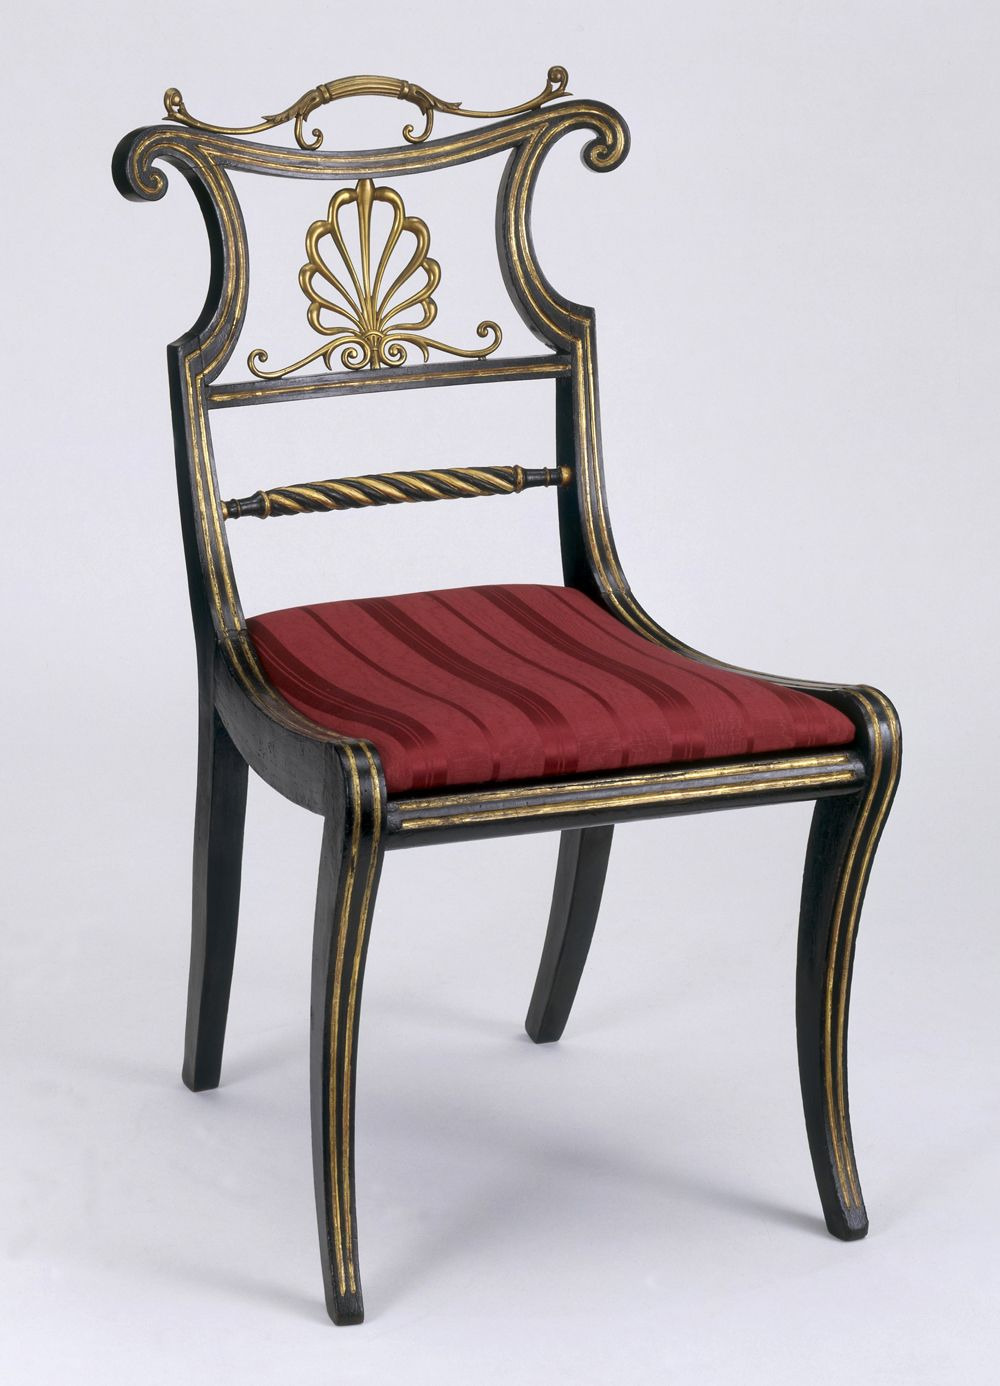 Antique Furniture Styles Guide Luxury Style Guide Regency Classicism Victoria and Albert Museum